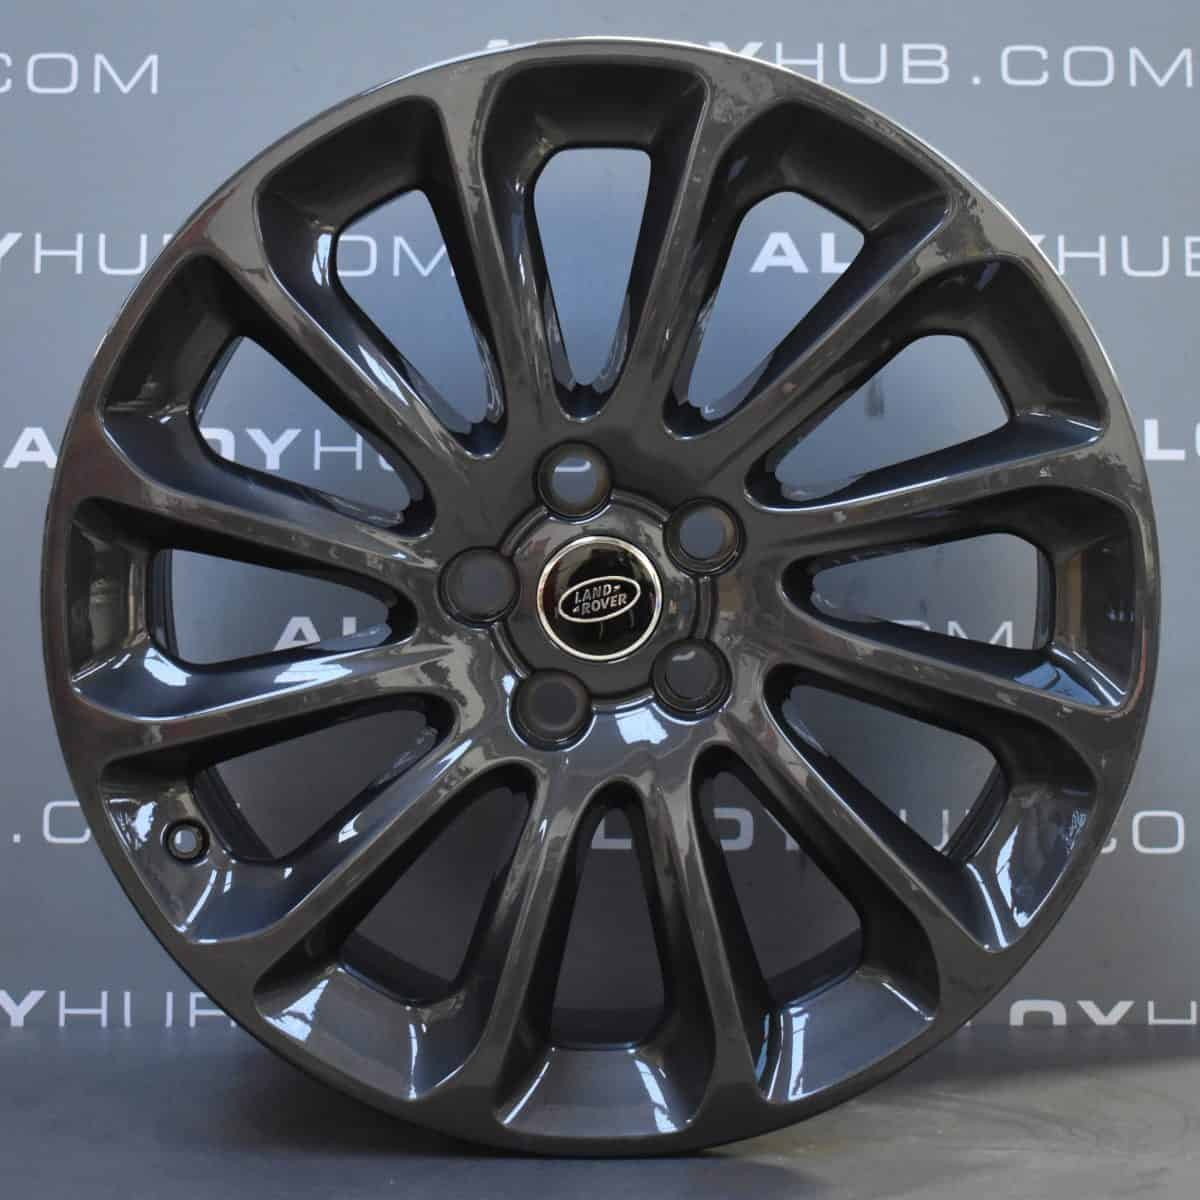 """Genuine Land Rover Range Rover Style 1065 20"""" inch 12 Spoke Alloy Wheels with Anthracite Grey Finish LR098796"""